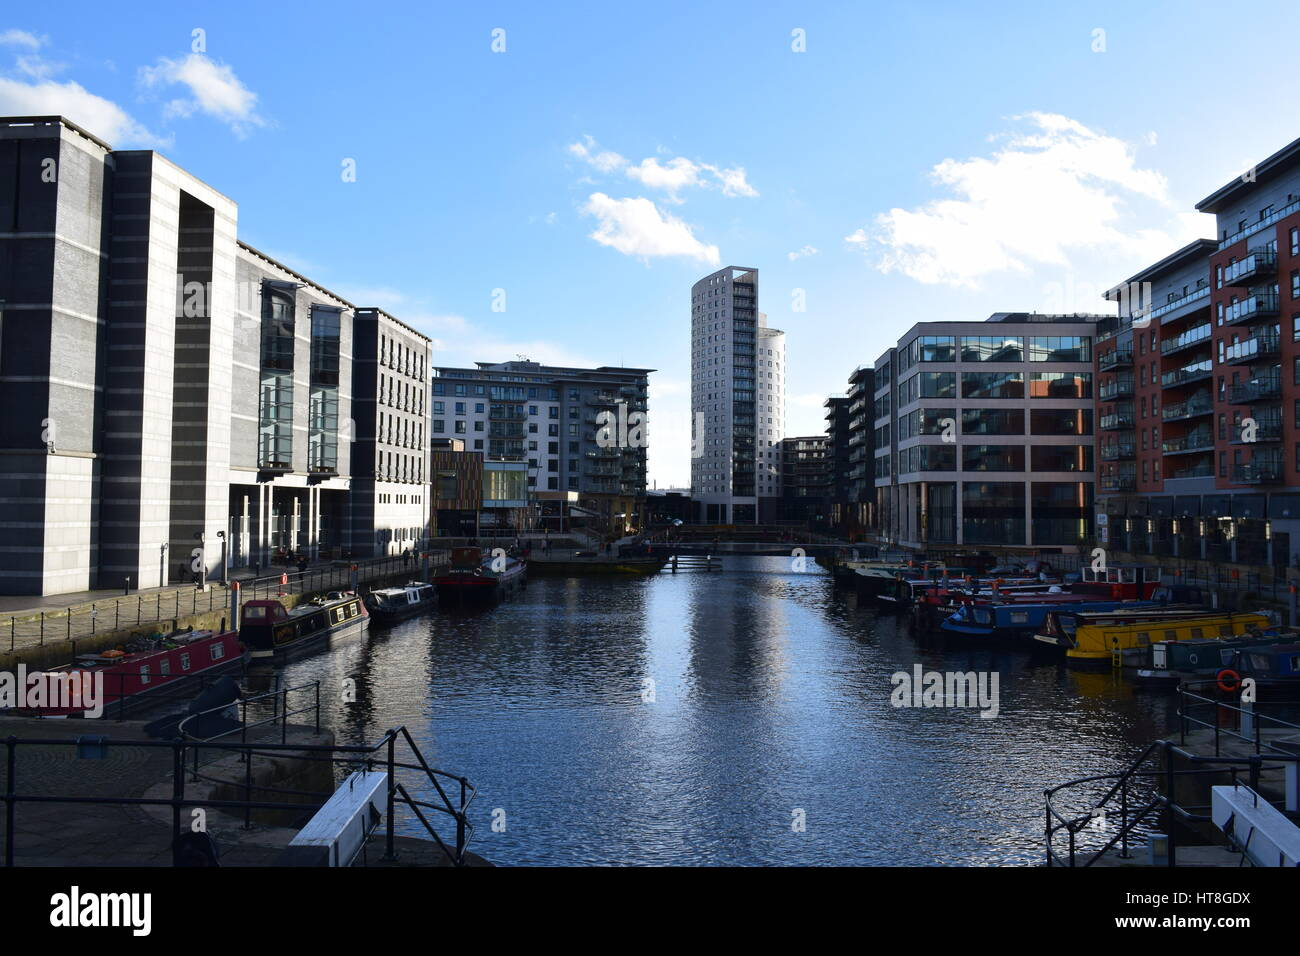 Leeds Dock is a mixed development with retail, office and leisure presence by the River Aire in central Leeds, West - Stock Image